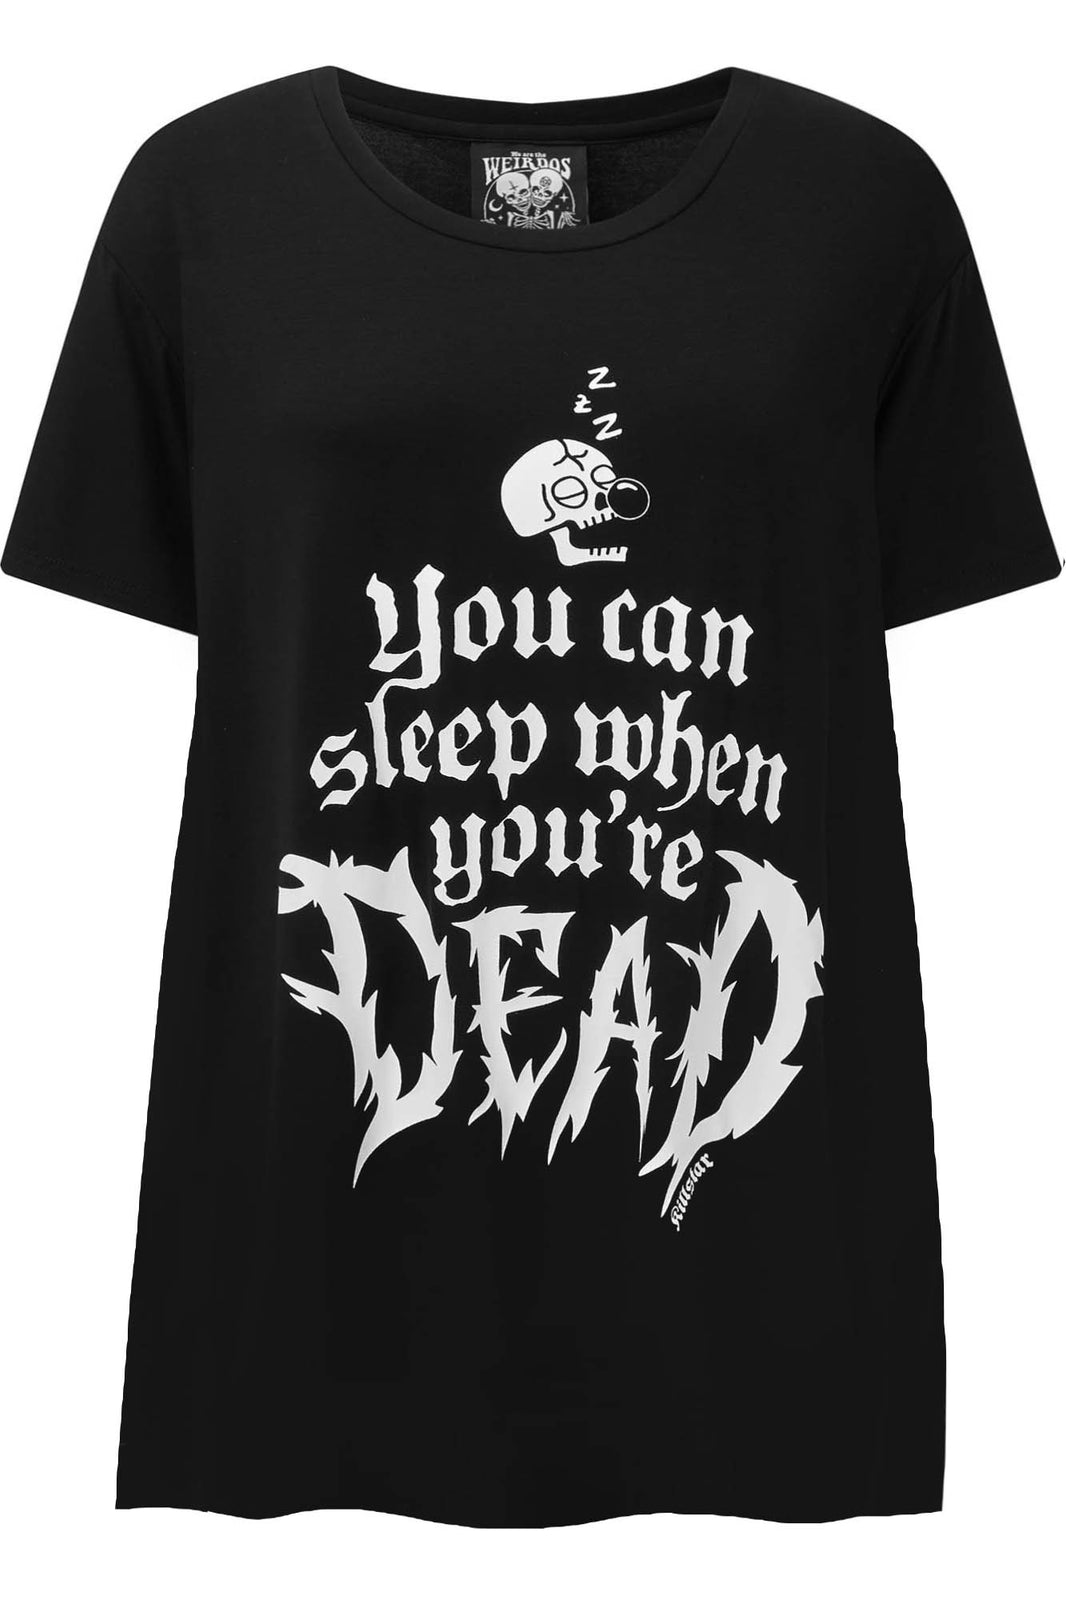 Dead Sleepy Sleep-Shirt [PLUS]